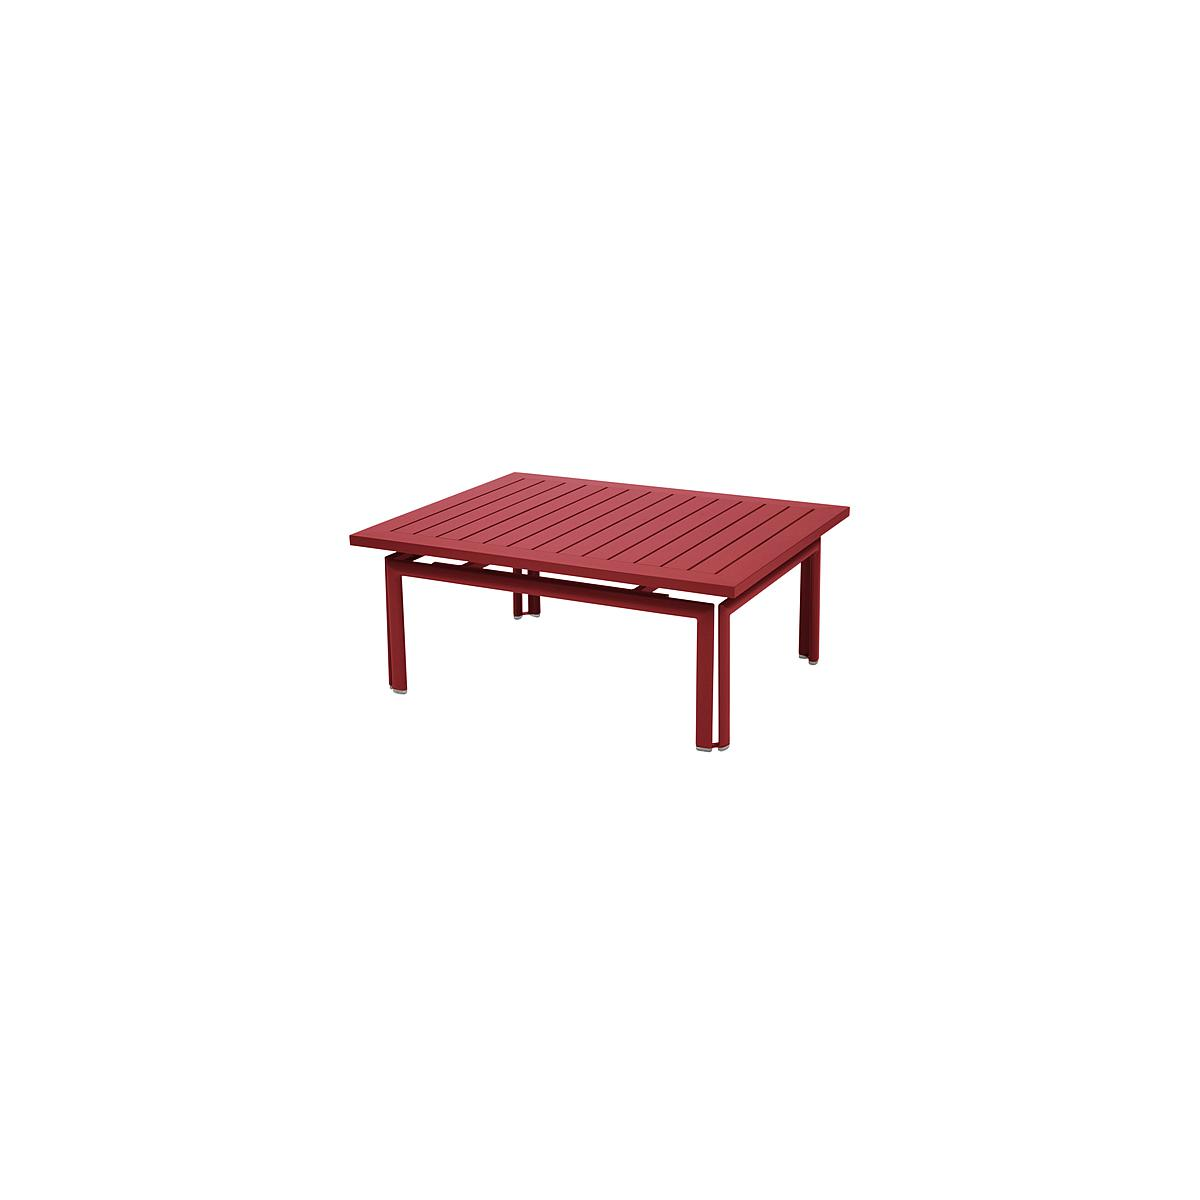 COSTA by Fermob Table basse Rouge piment